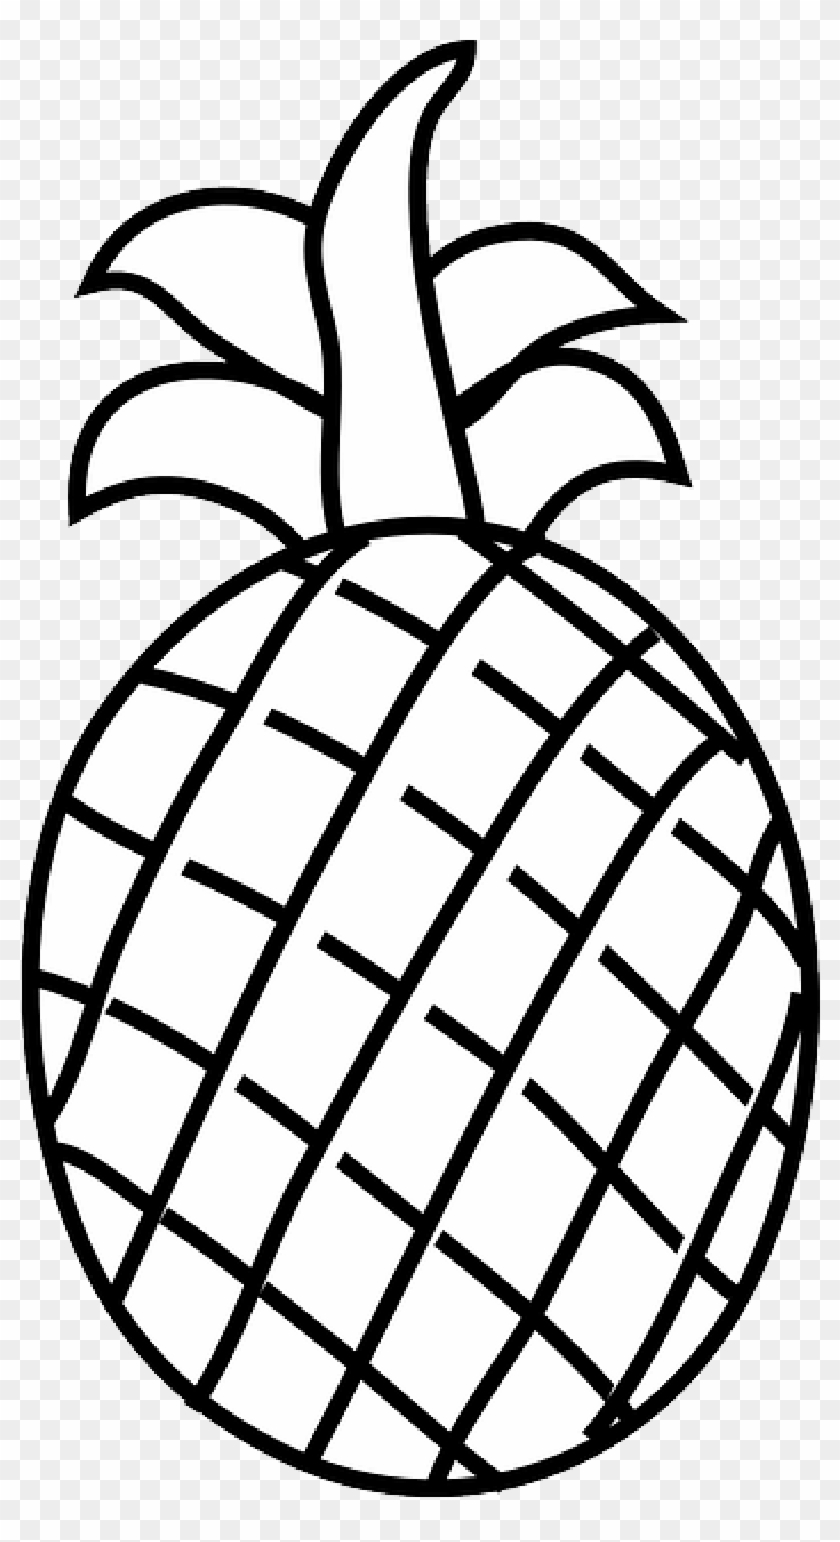 Black, Apple, Food, Fruit, Outline, Drawing, White - Line Drawing Of Fruits #174559